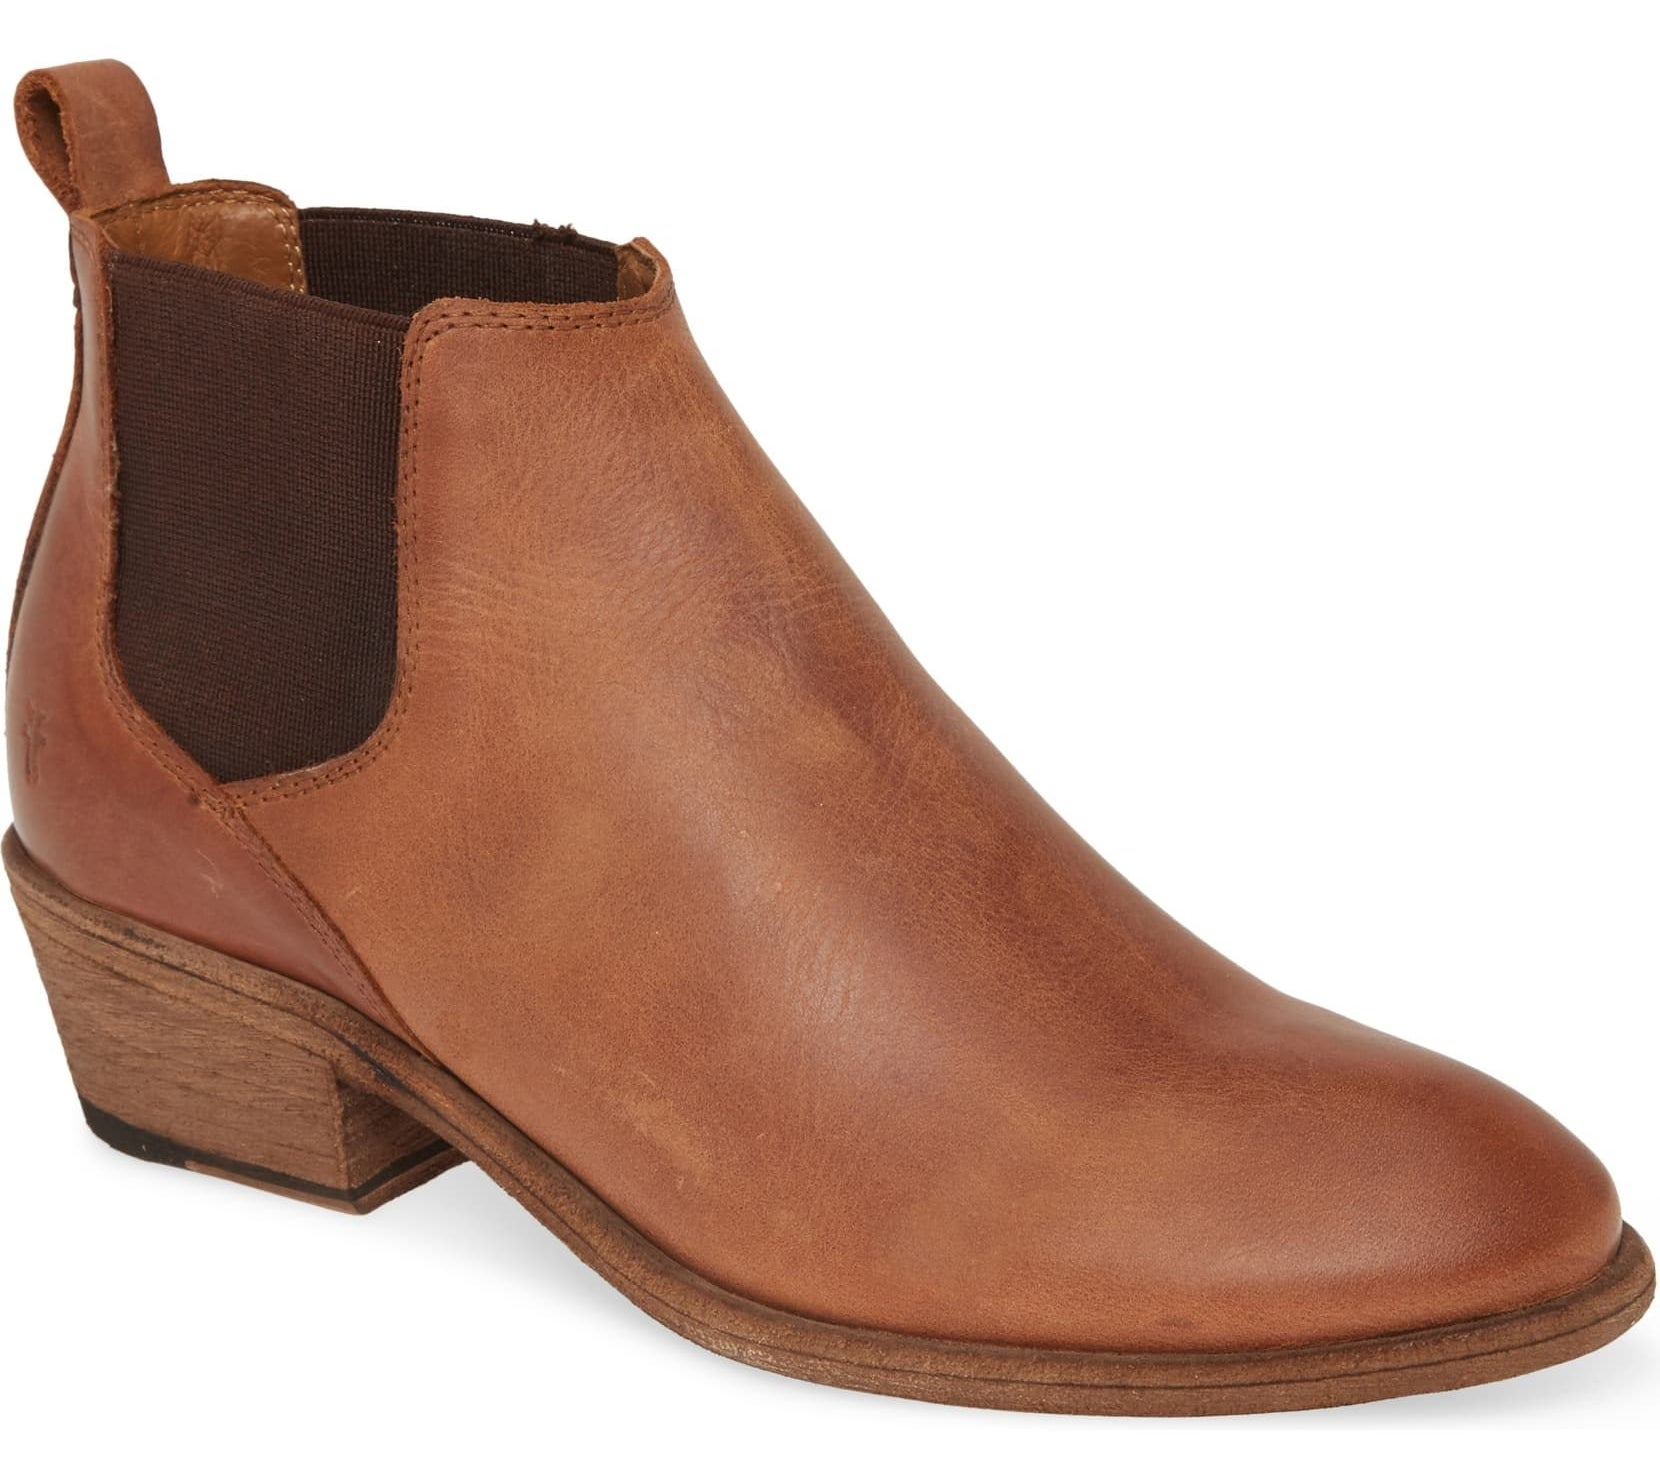 The Chelsea-style boot in a cognac brown color